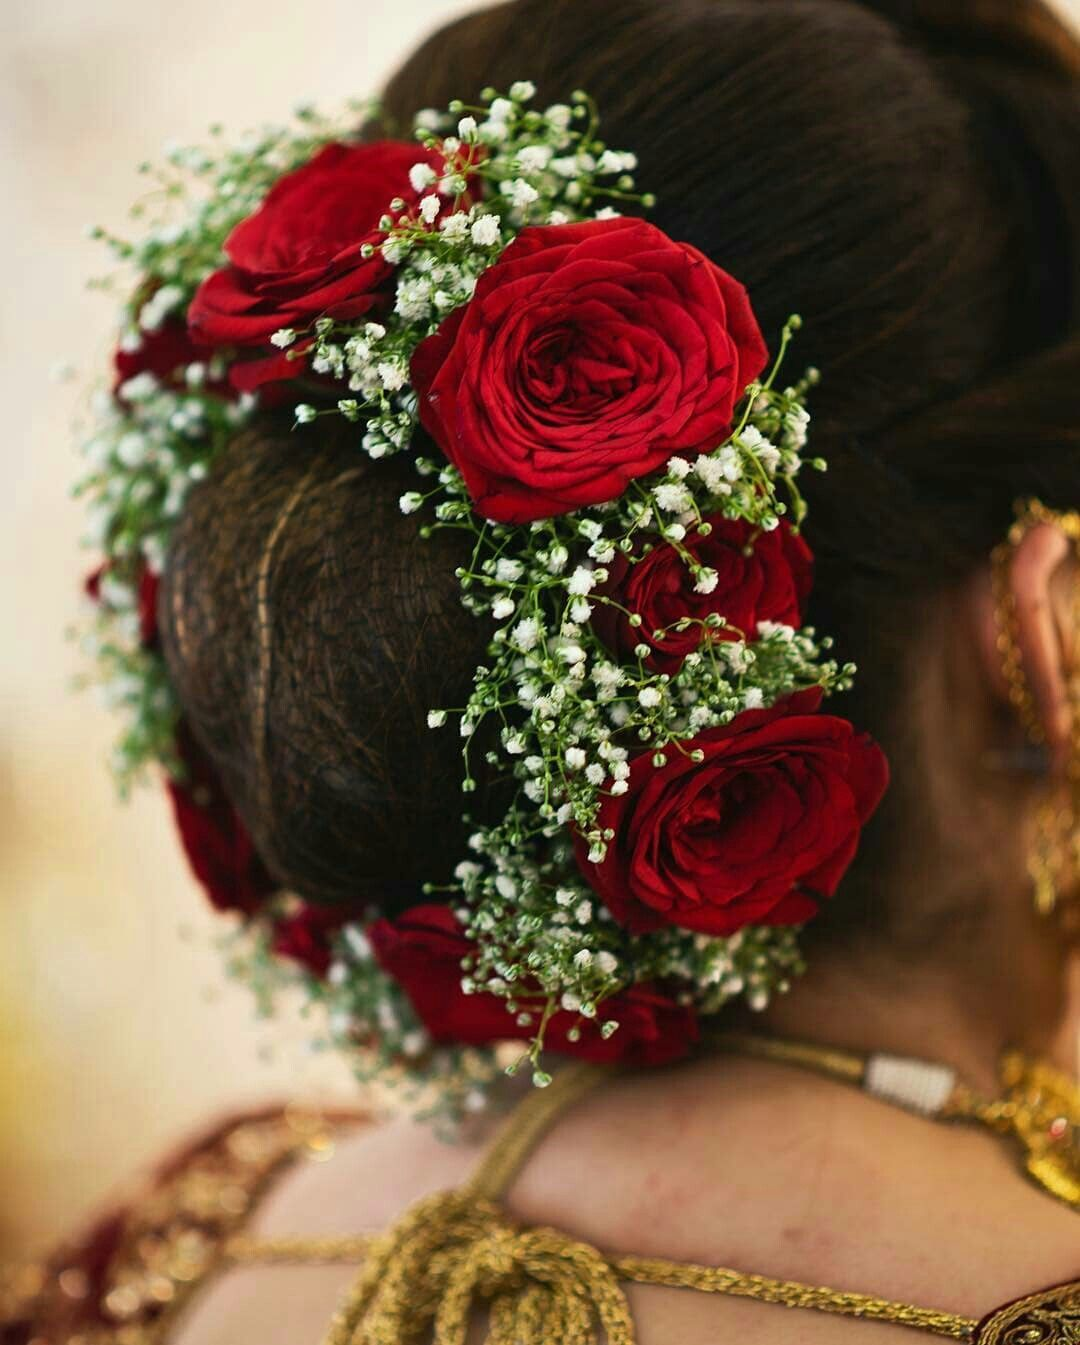 What A Beautiful Large Low Bun With Real Flower Gajra Care However Should Be Taken Bef Bridal Hair Decorations Bridal Hairstyle Indian Wedding Flowers In Hair